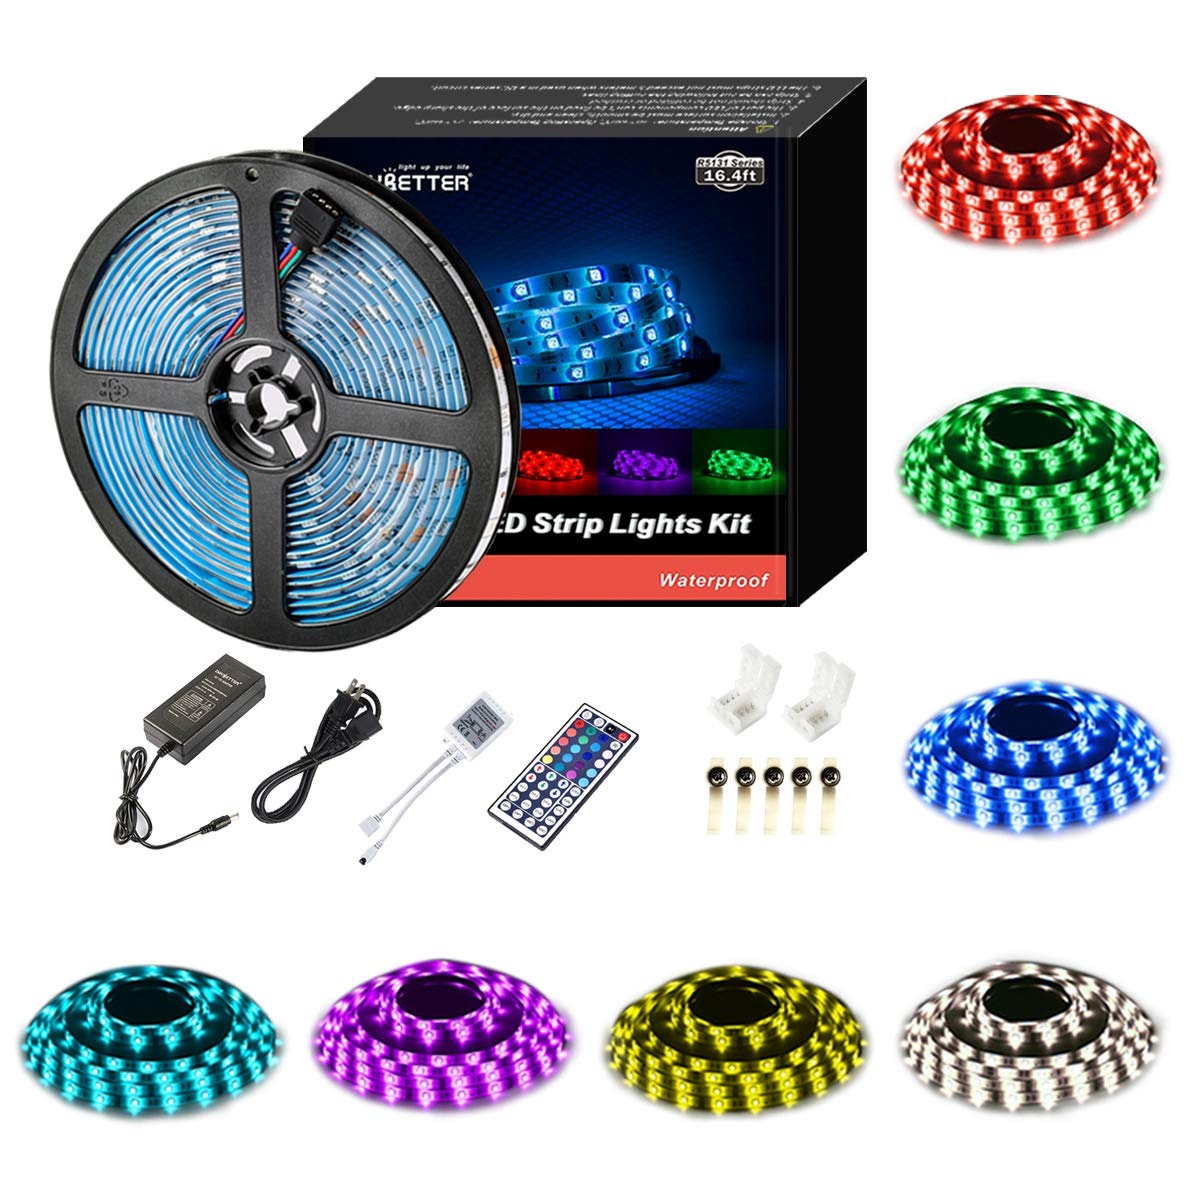 Led Strip Lights Waterproof 16.4ft 5m Waterproof Flexible Color Changing RGB SMD 5050 150leds LED Strip Light Kit with 44 Keys IR Remote Controller and 12V Power Supply